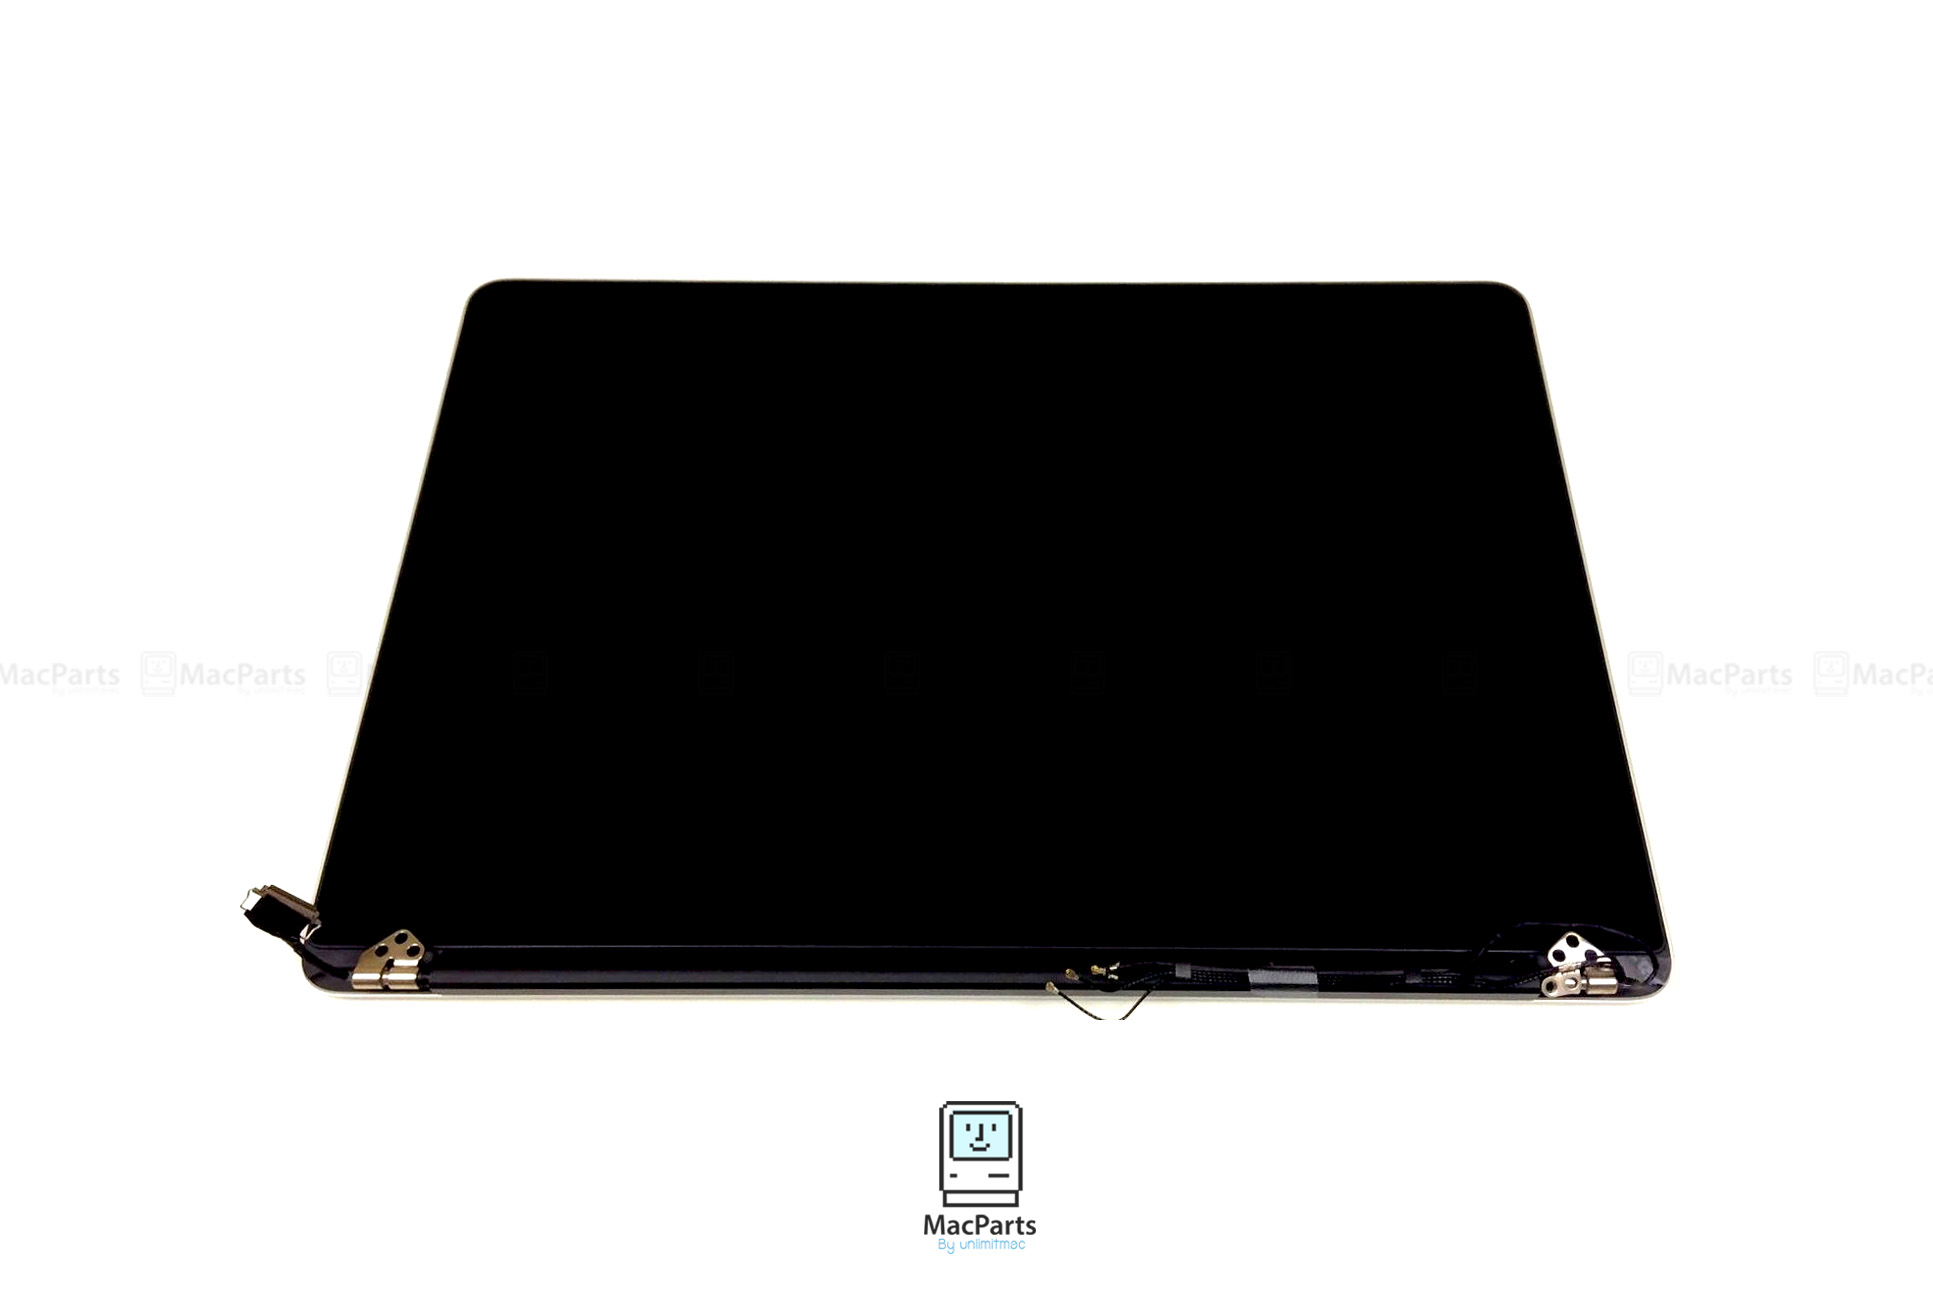 661-02532 LCD Screen Display Assembly For MacBook Pro (Retina, 15-inch, Mid 2015) A1398